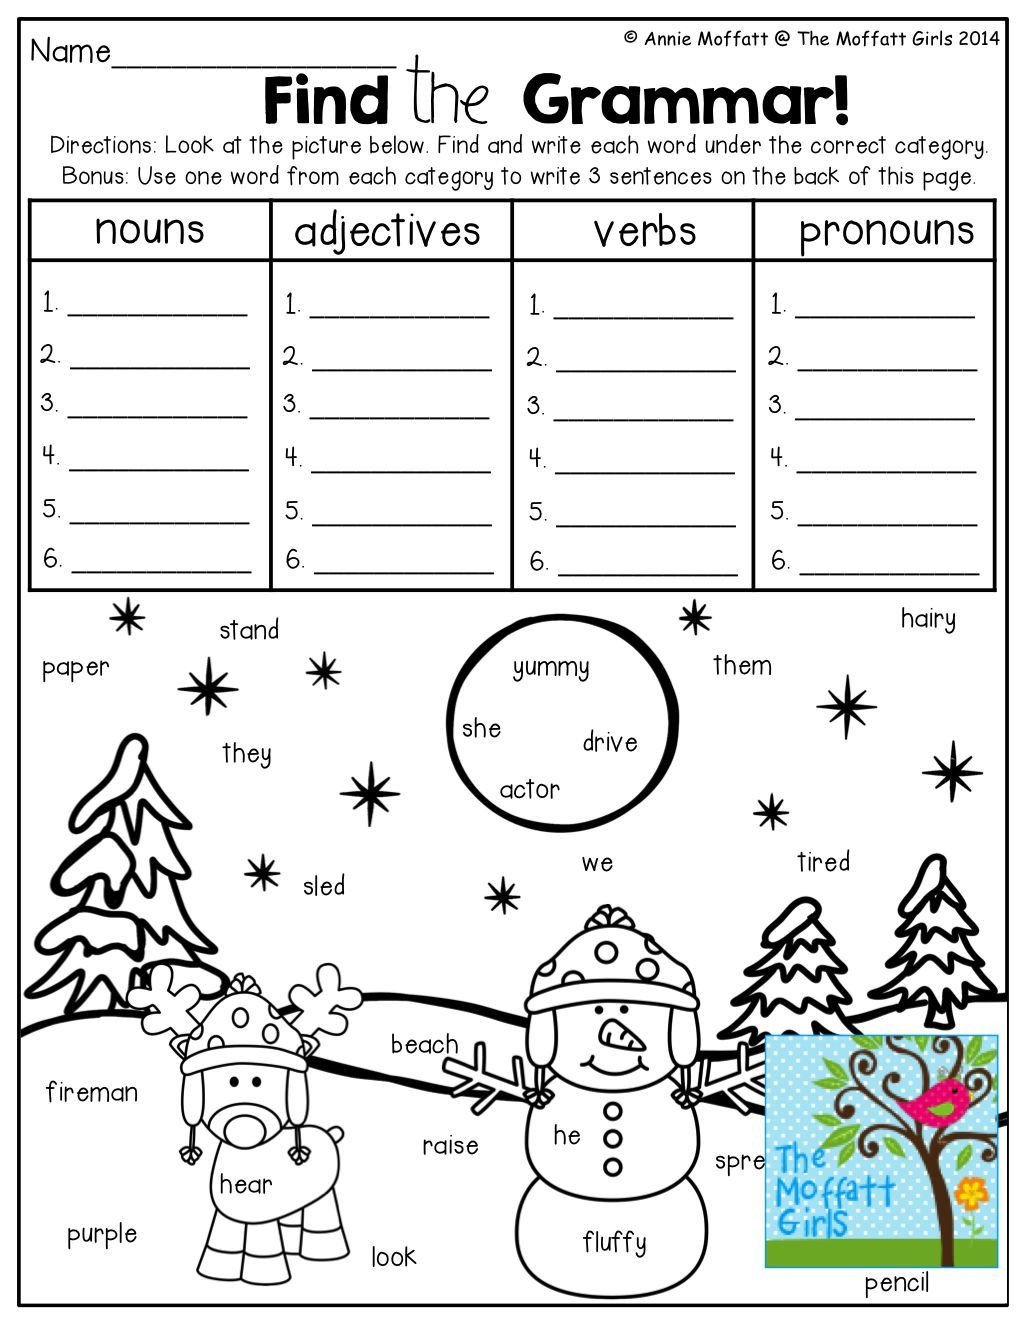 Sign Language Worksheets for Kids 80 Fraction Printables Ccss Aligned